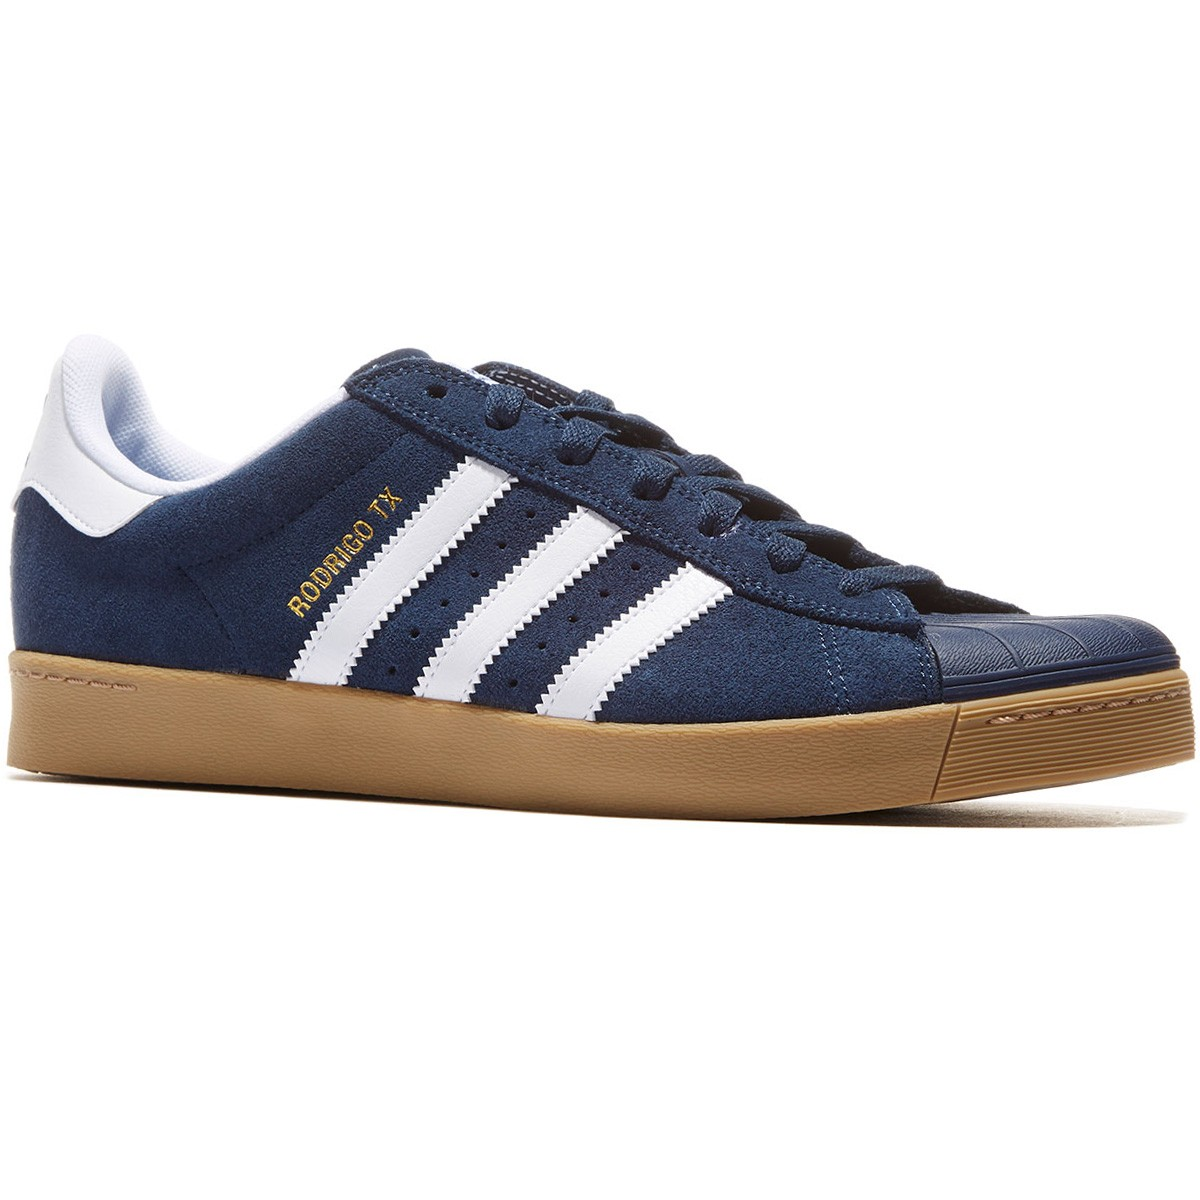 Cheap Adidas superstar adv black Top Quality C3 Church Salisbury